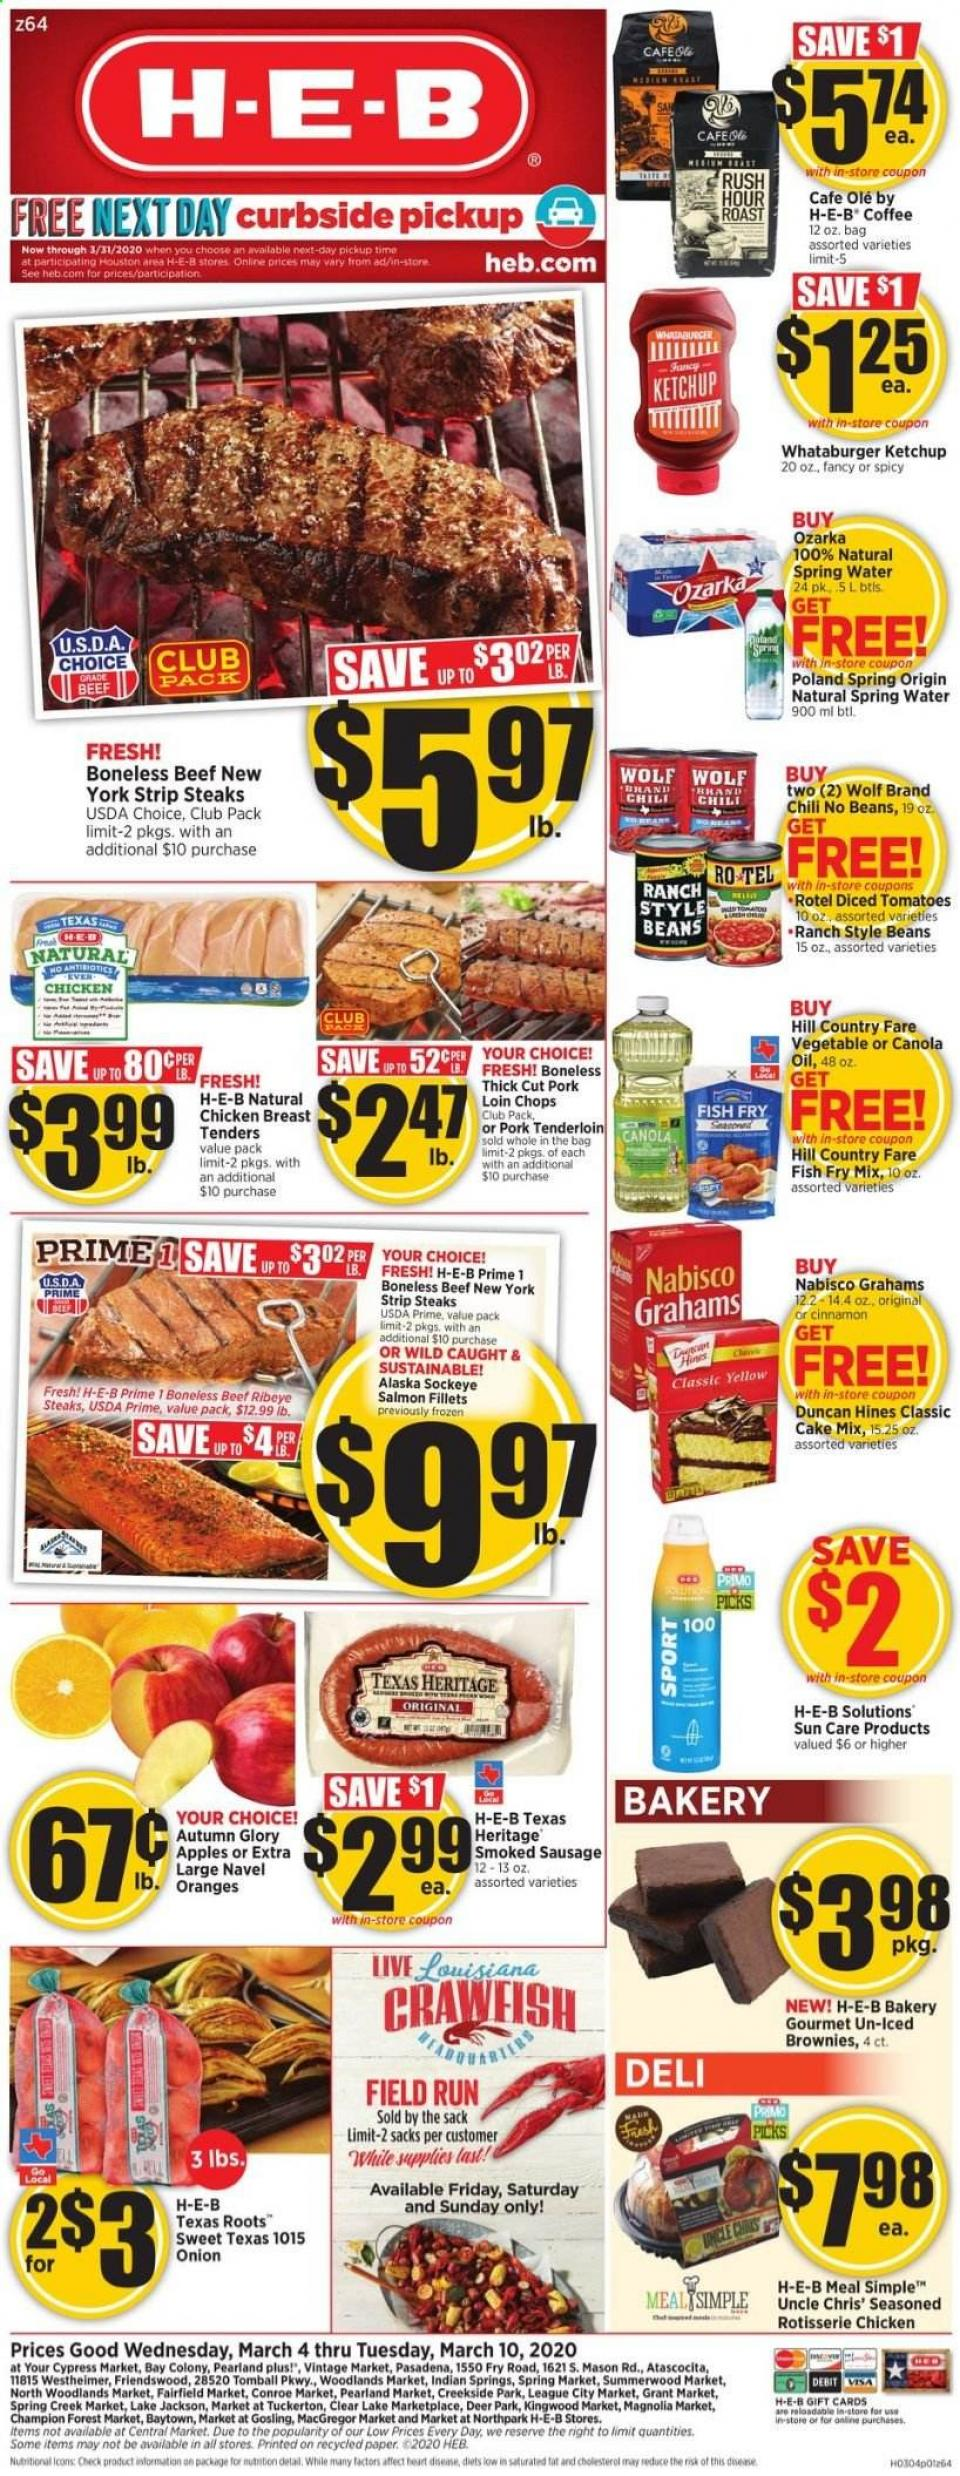 HEB March Weekly Ad valid from Mar 4 – 10, 2020.